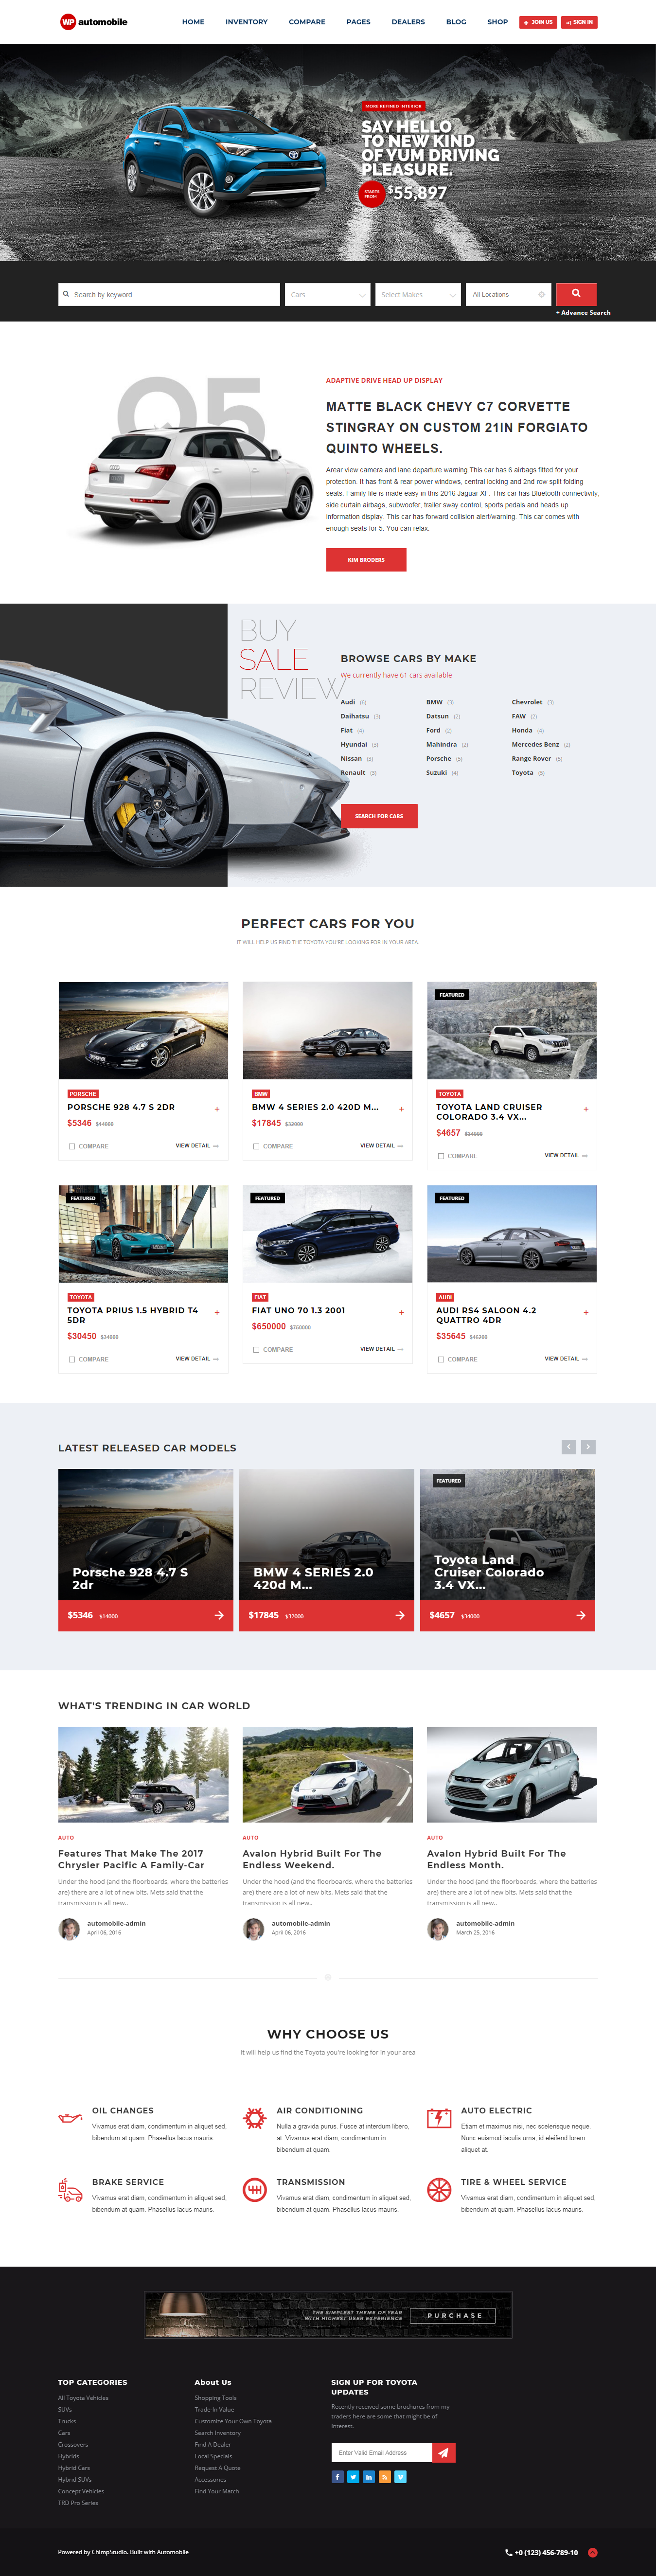 Automobile - Best Premium Automobile WordPress Theme